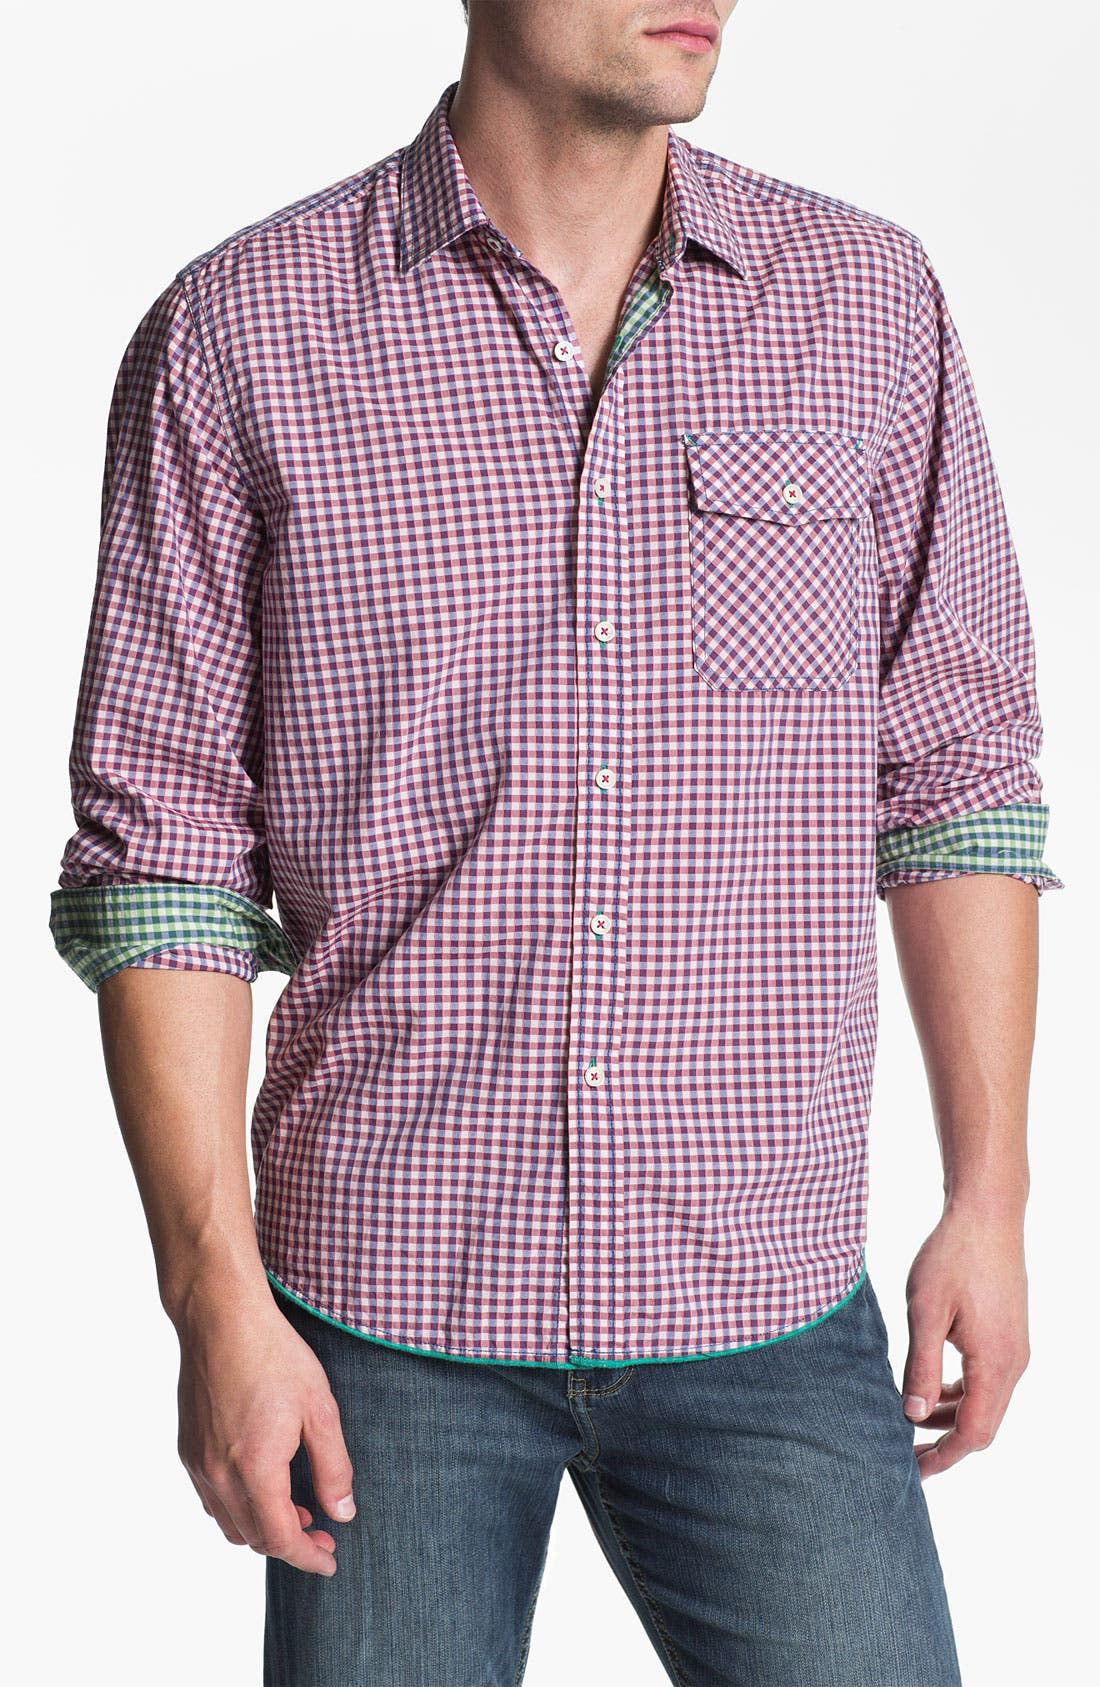 Alternate Image 1 Selected - Tommy Bahama Denim 'Cape Check' Sport Shirt